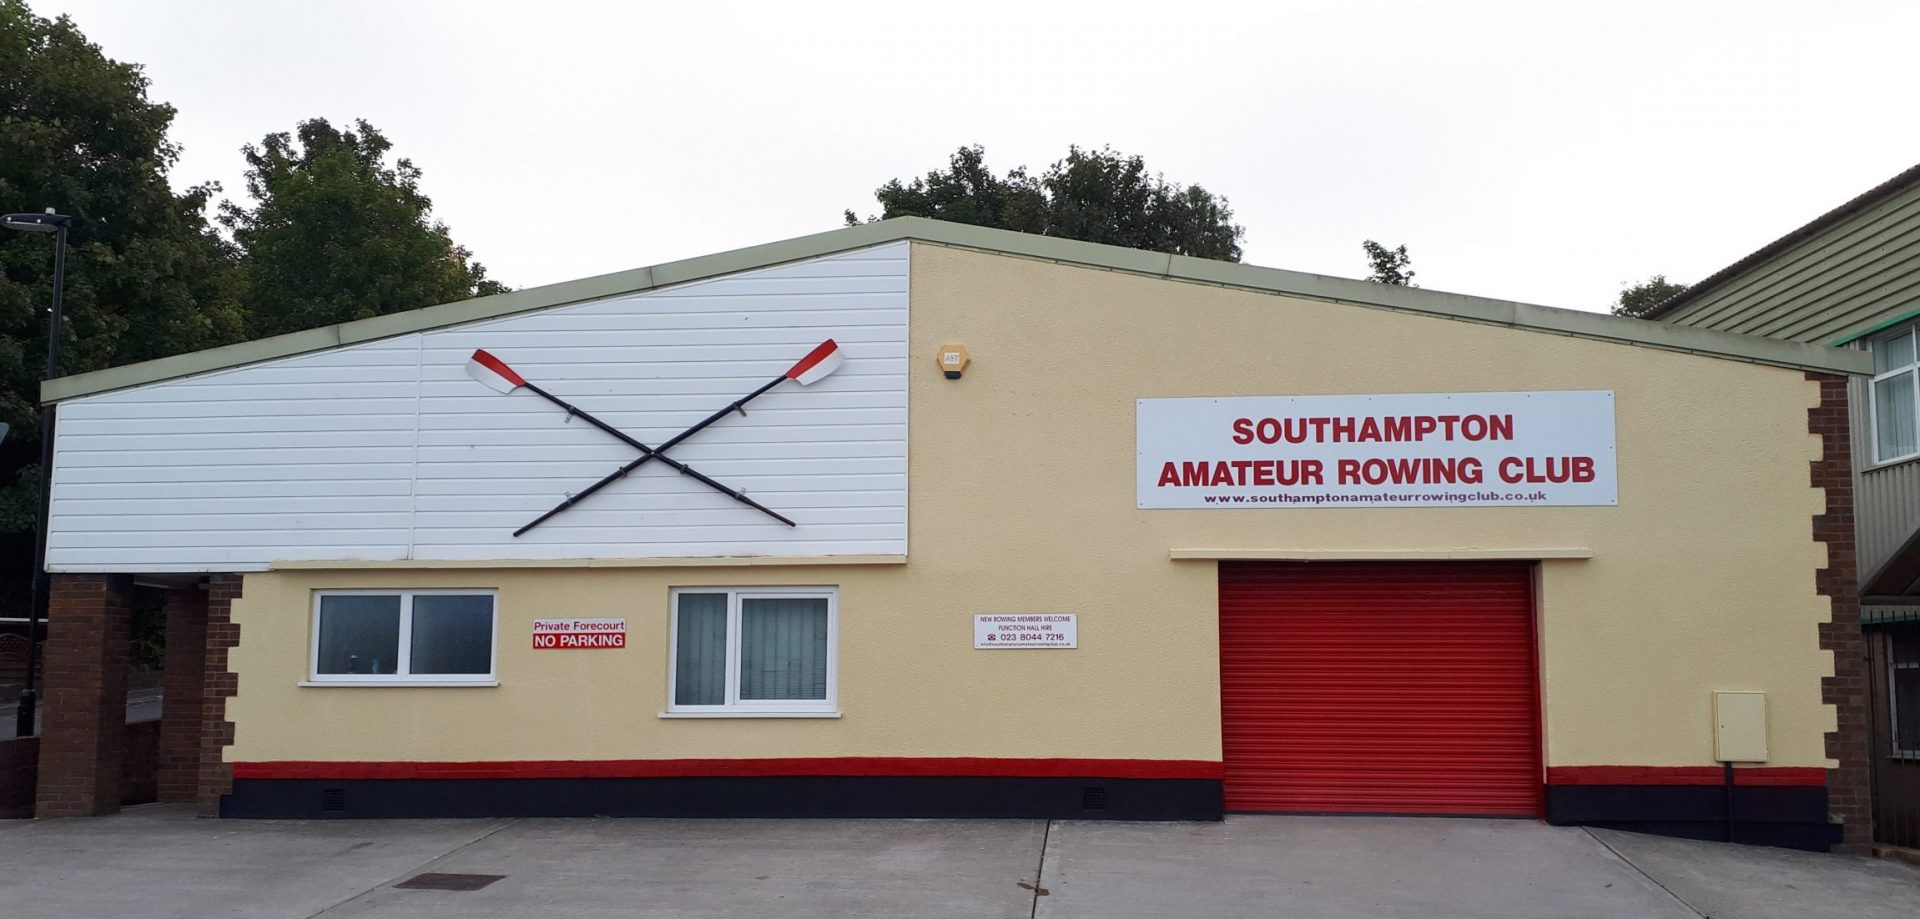 Southampton Amateur Rowing Club